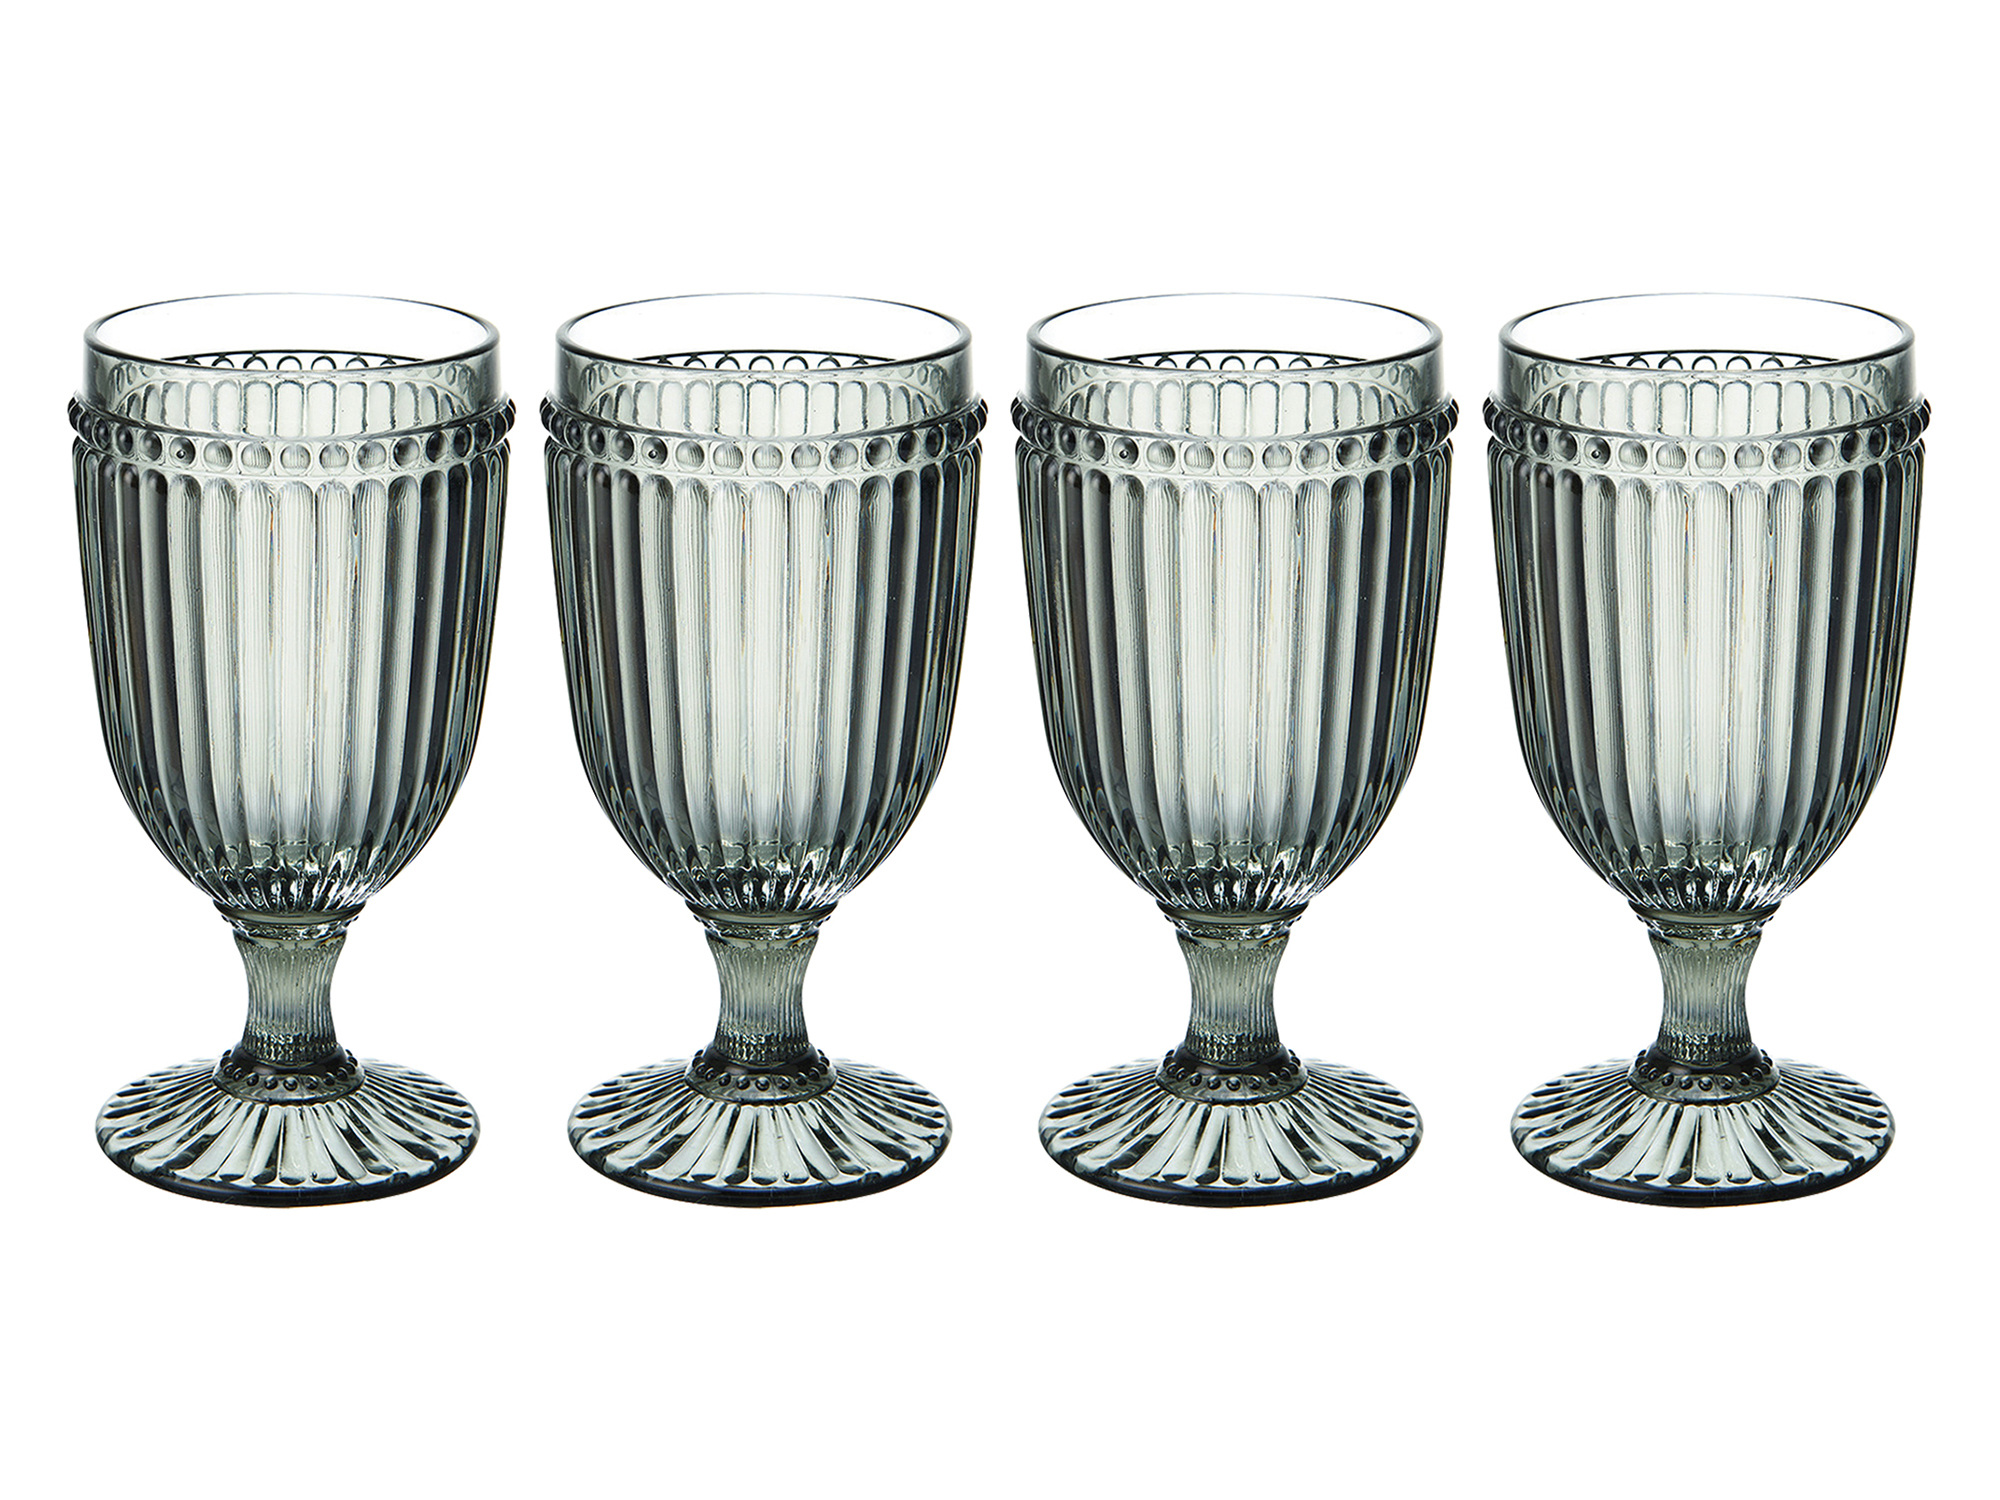 Mikasa Italian Countryside Set Of 4 Iced Beverage 13Oz Glasses Smoke